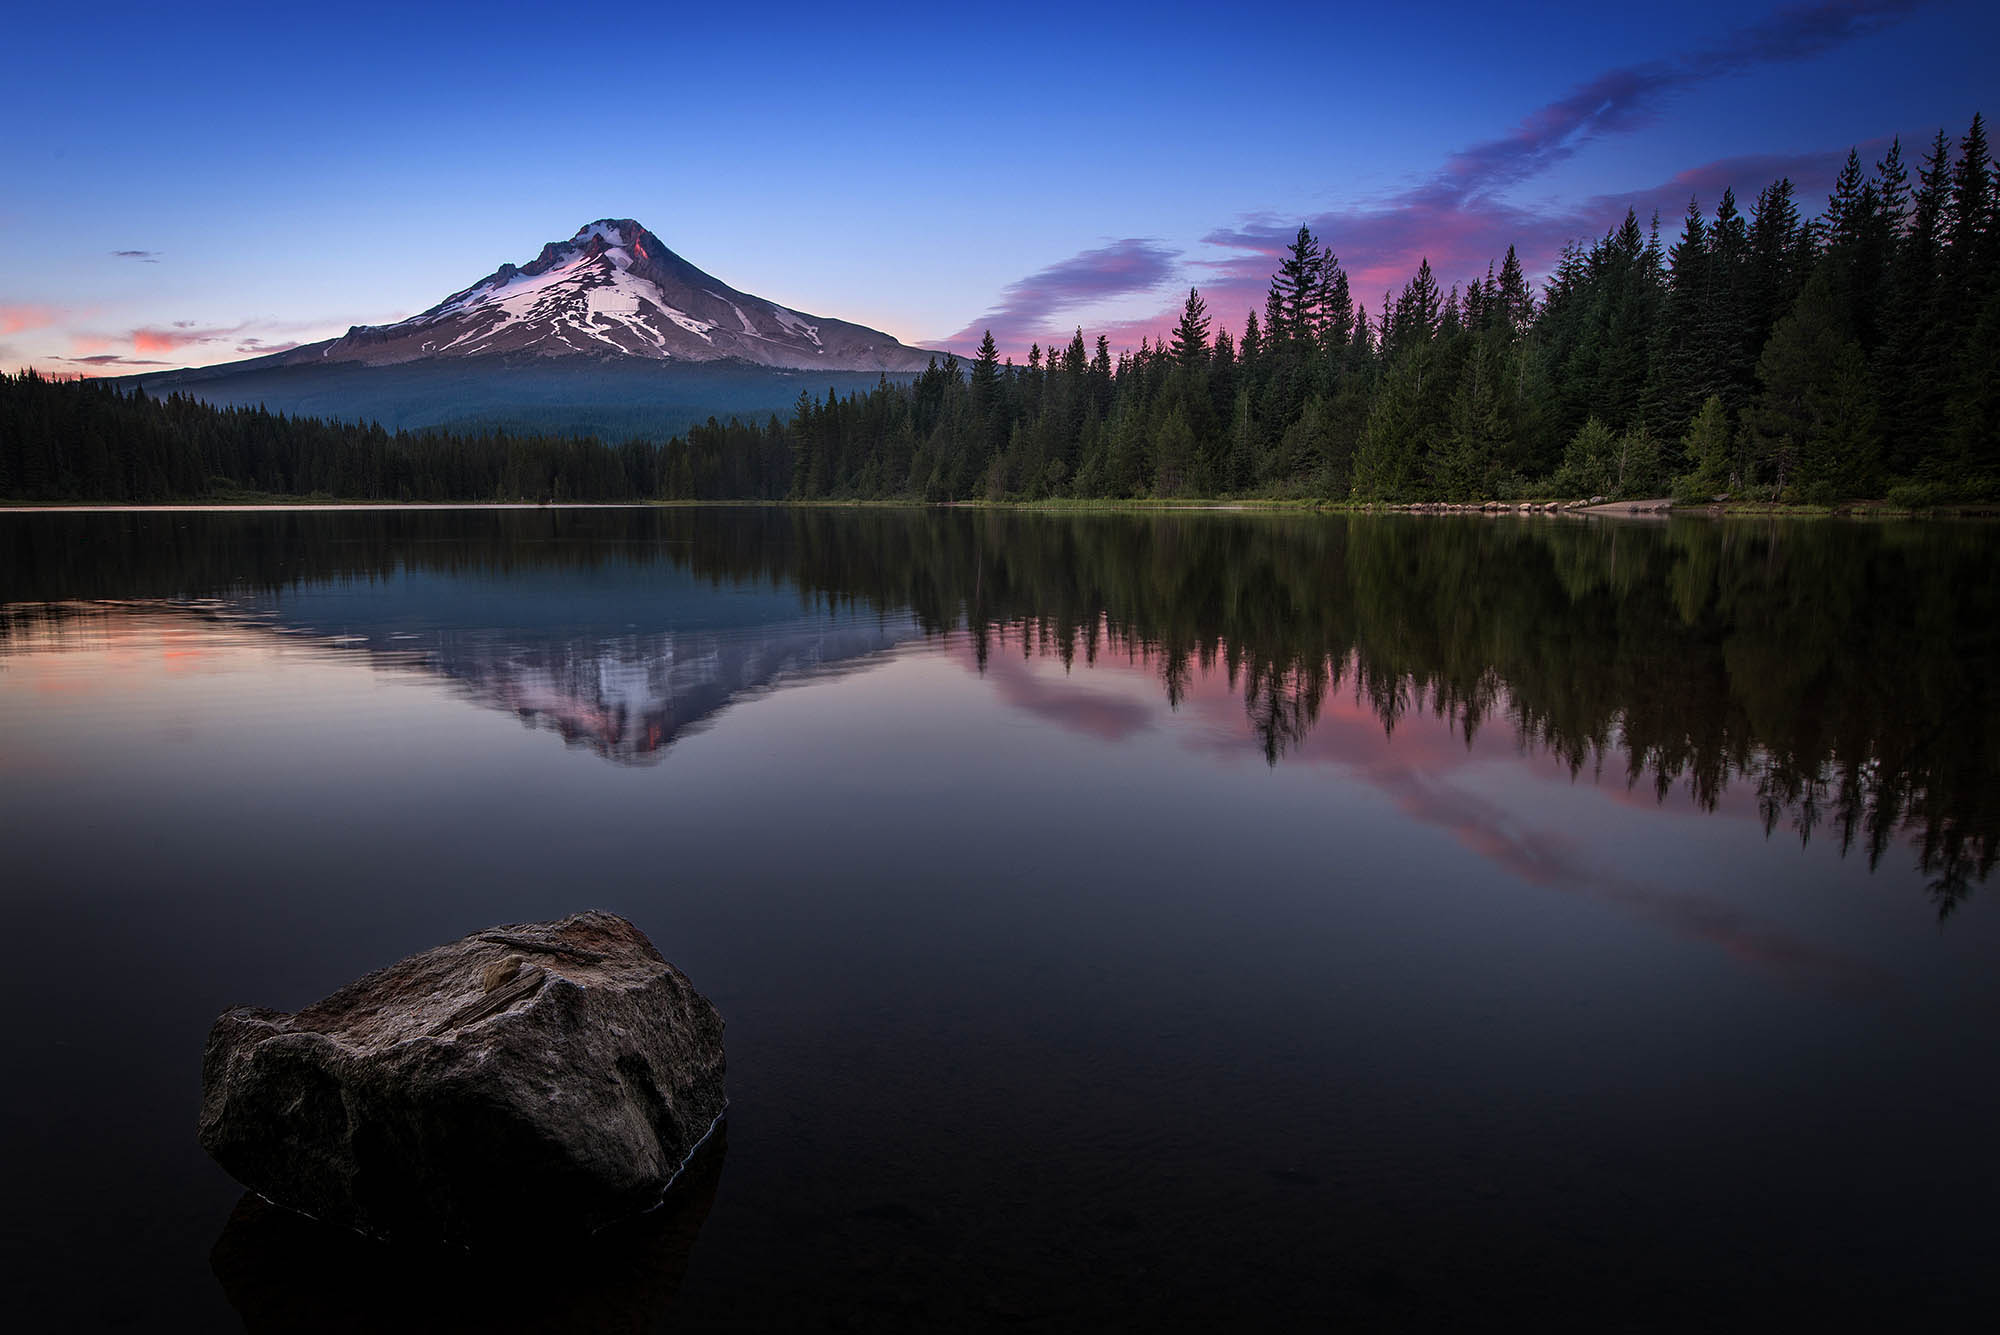 Rule of Thirds in Photography - Rule of Thirds Trillium Lake Example - Sunny 16